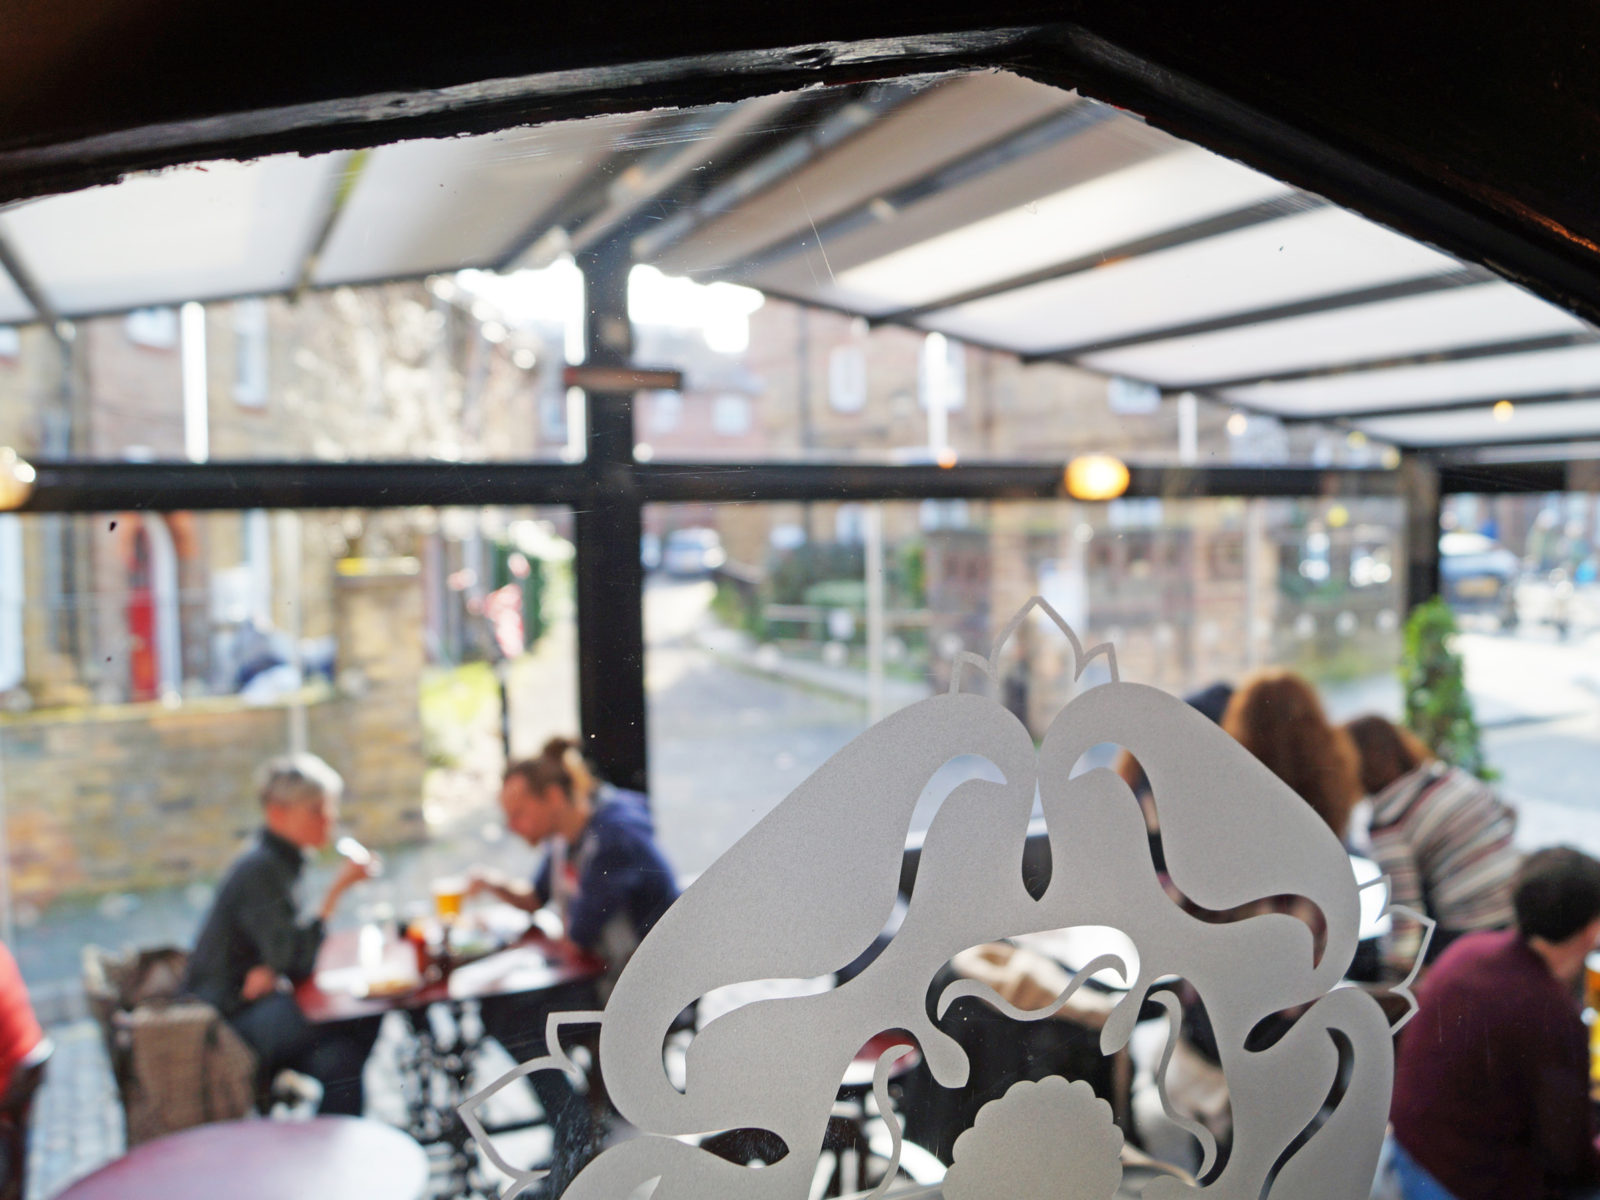 The view into our conservatory. Did you know we have space heaters so even in the colder months it is always cosy.